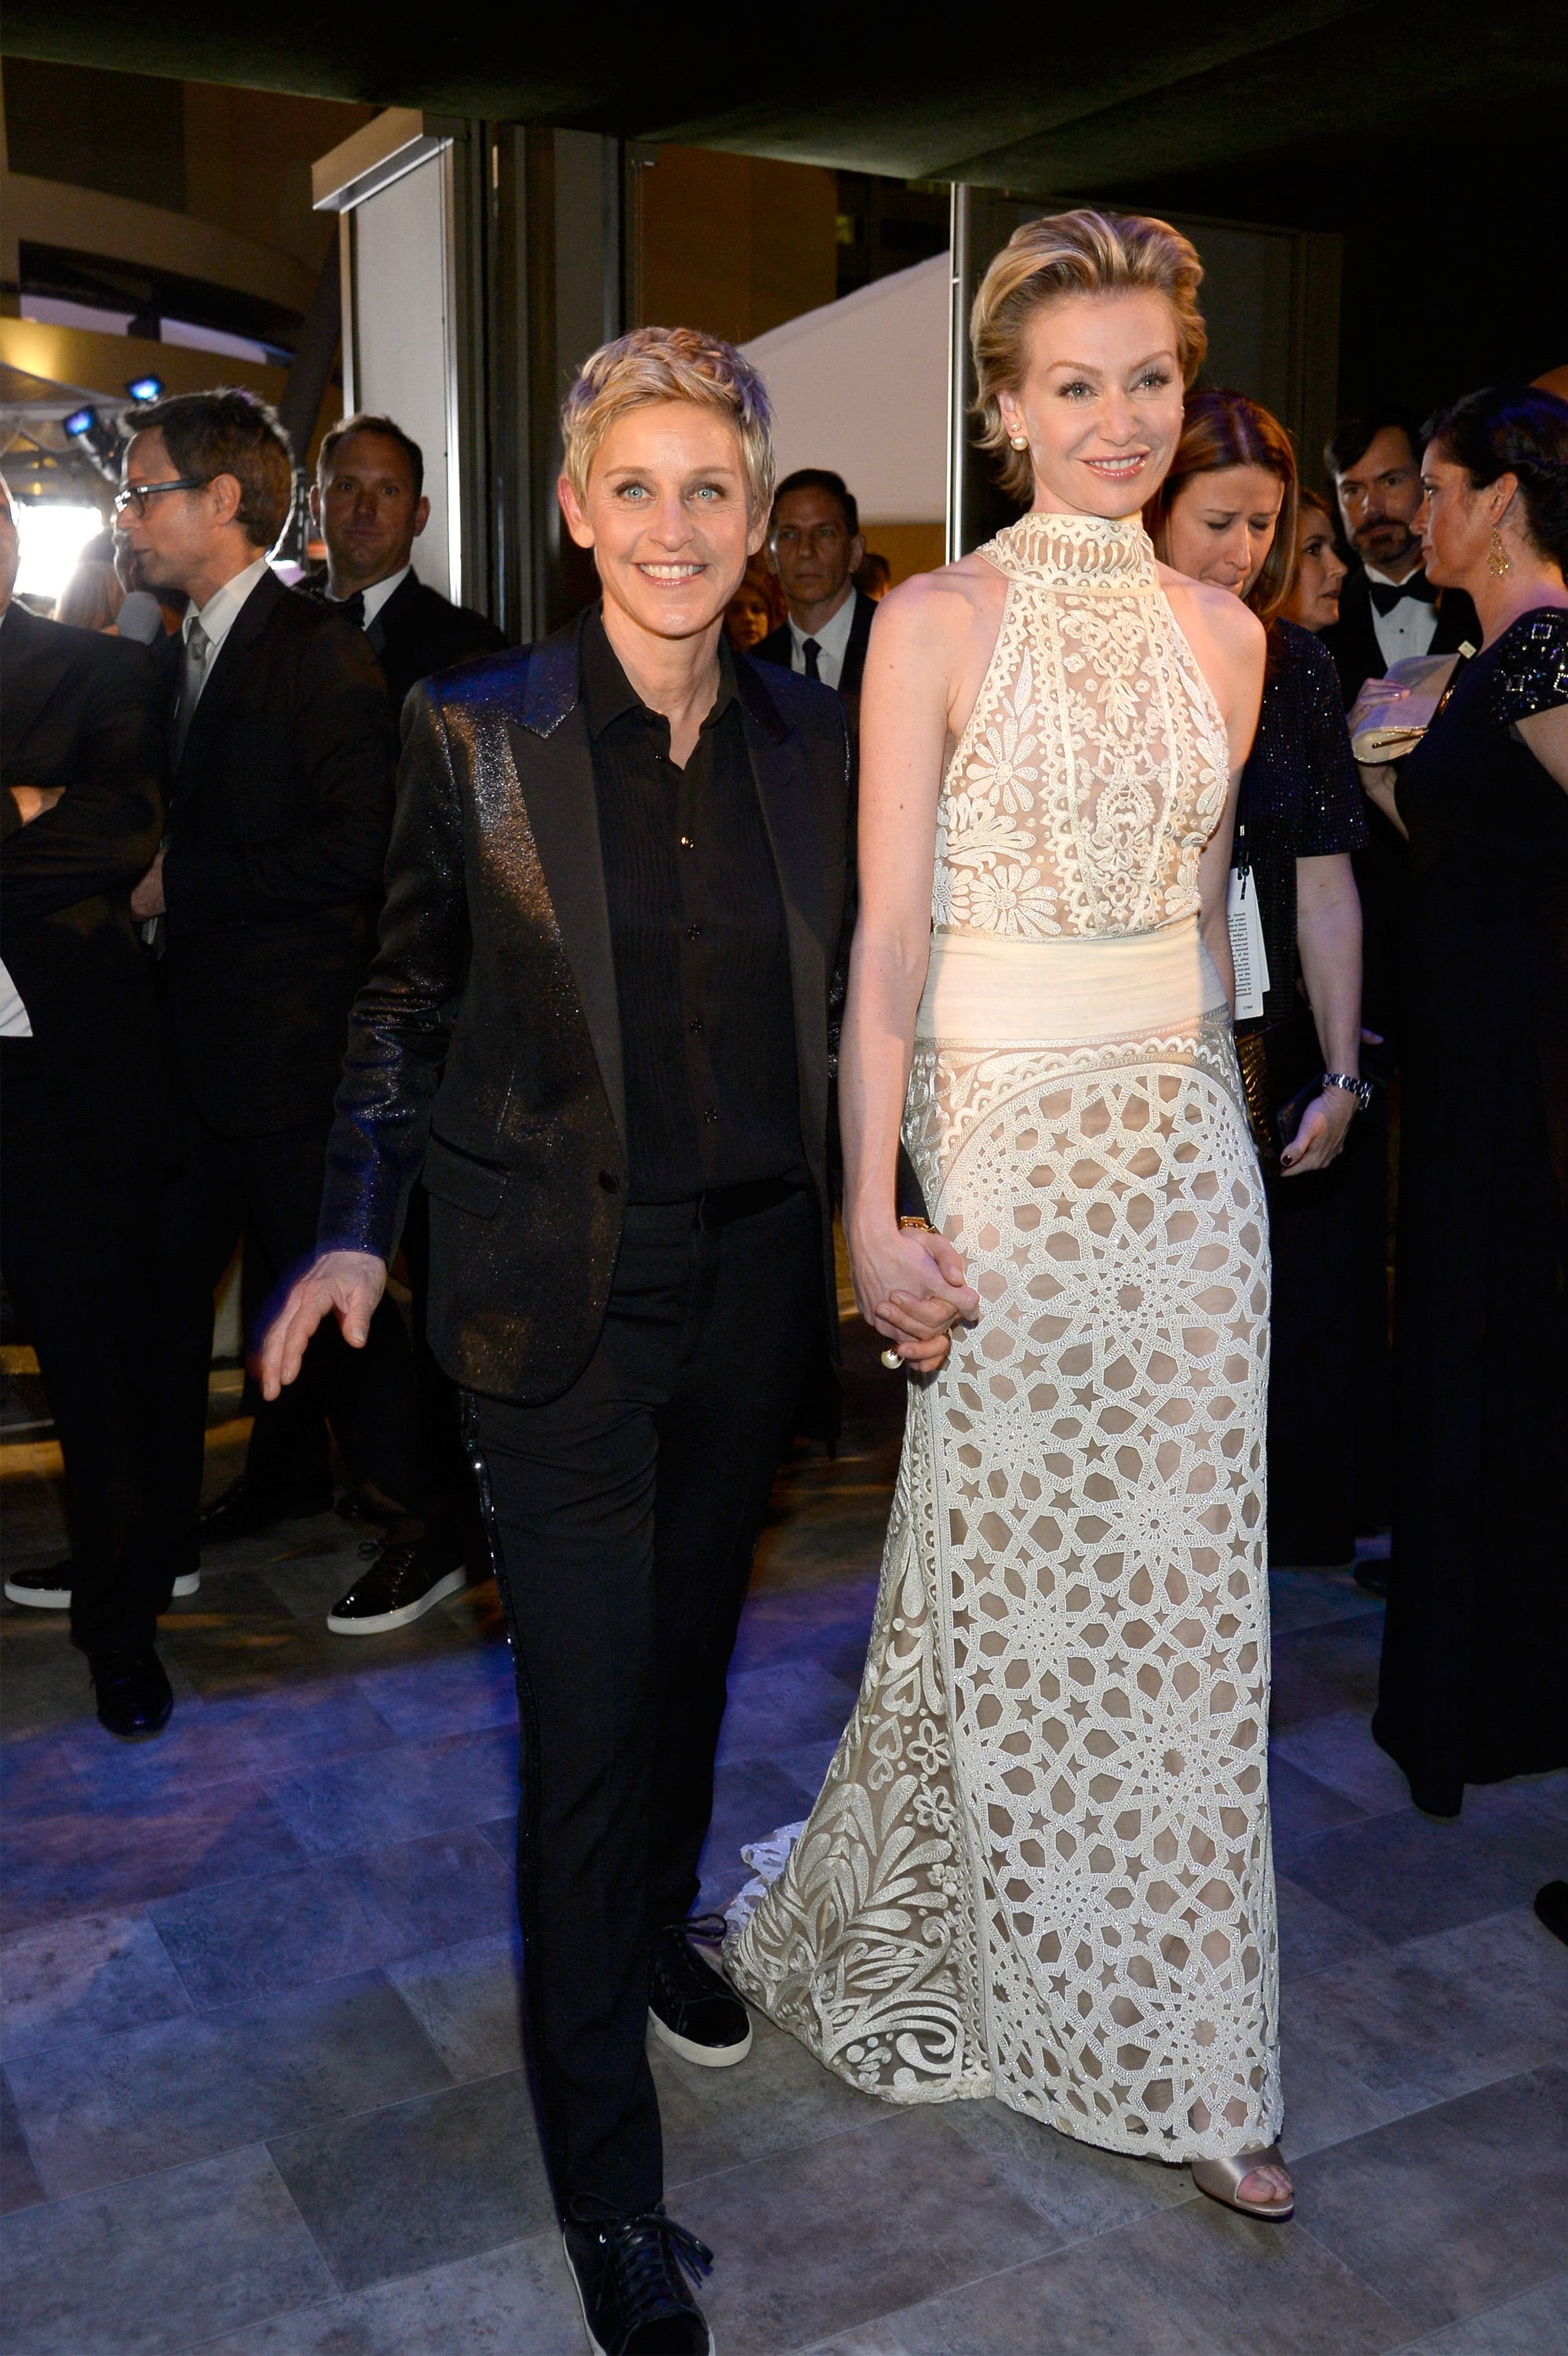 Ellen DeGeneres and Portia de Rossi walked into the ball hand in hand.